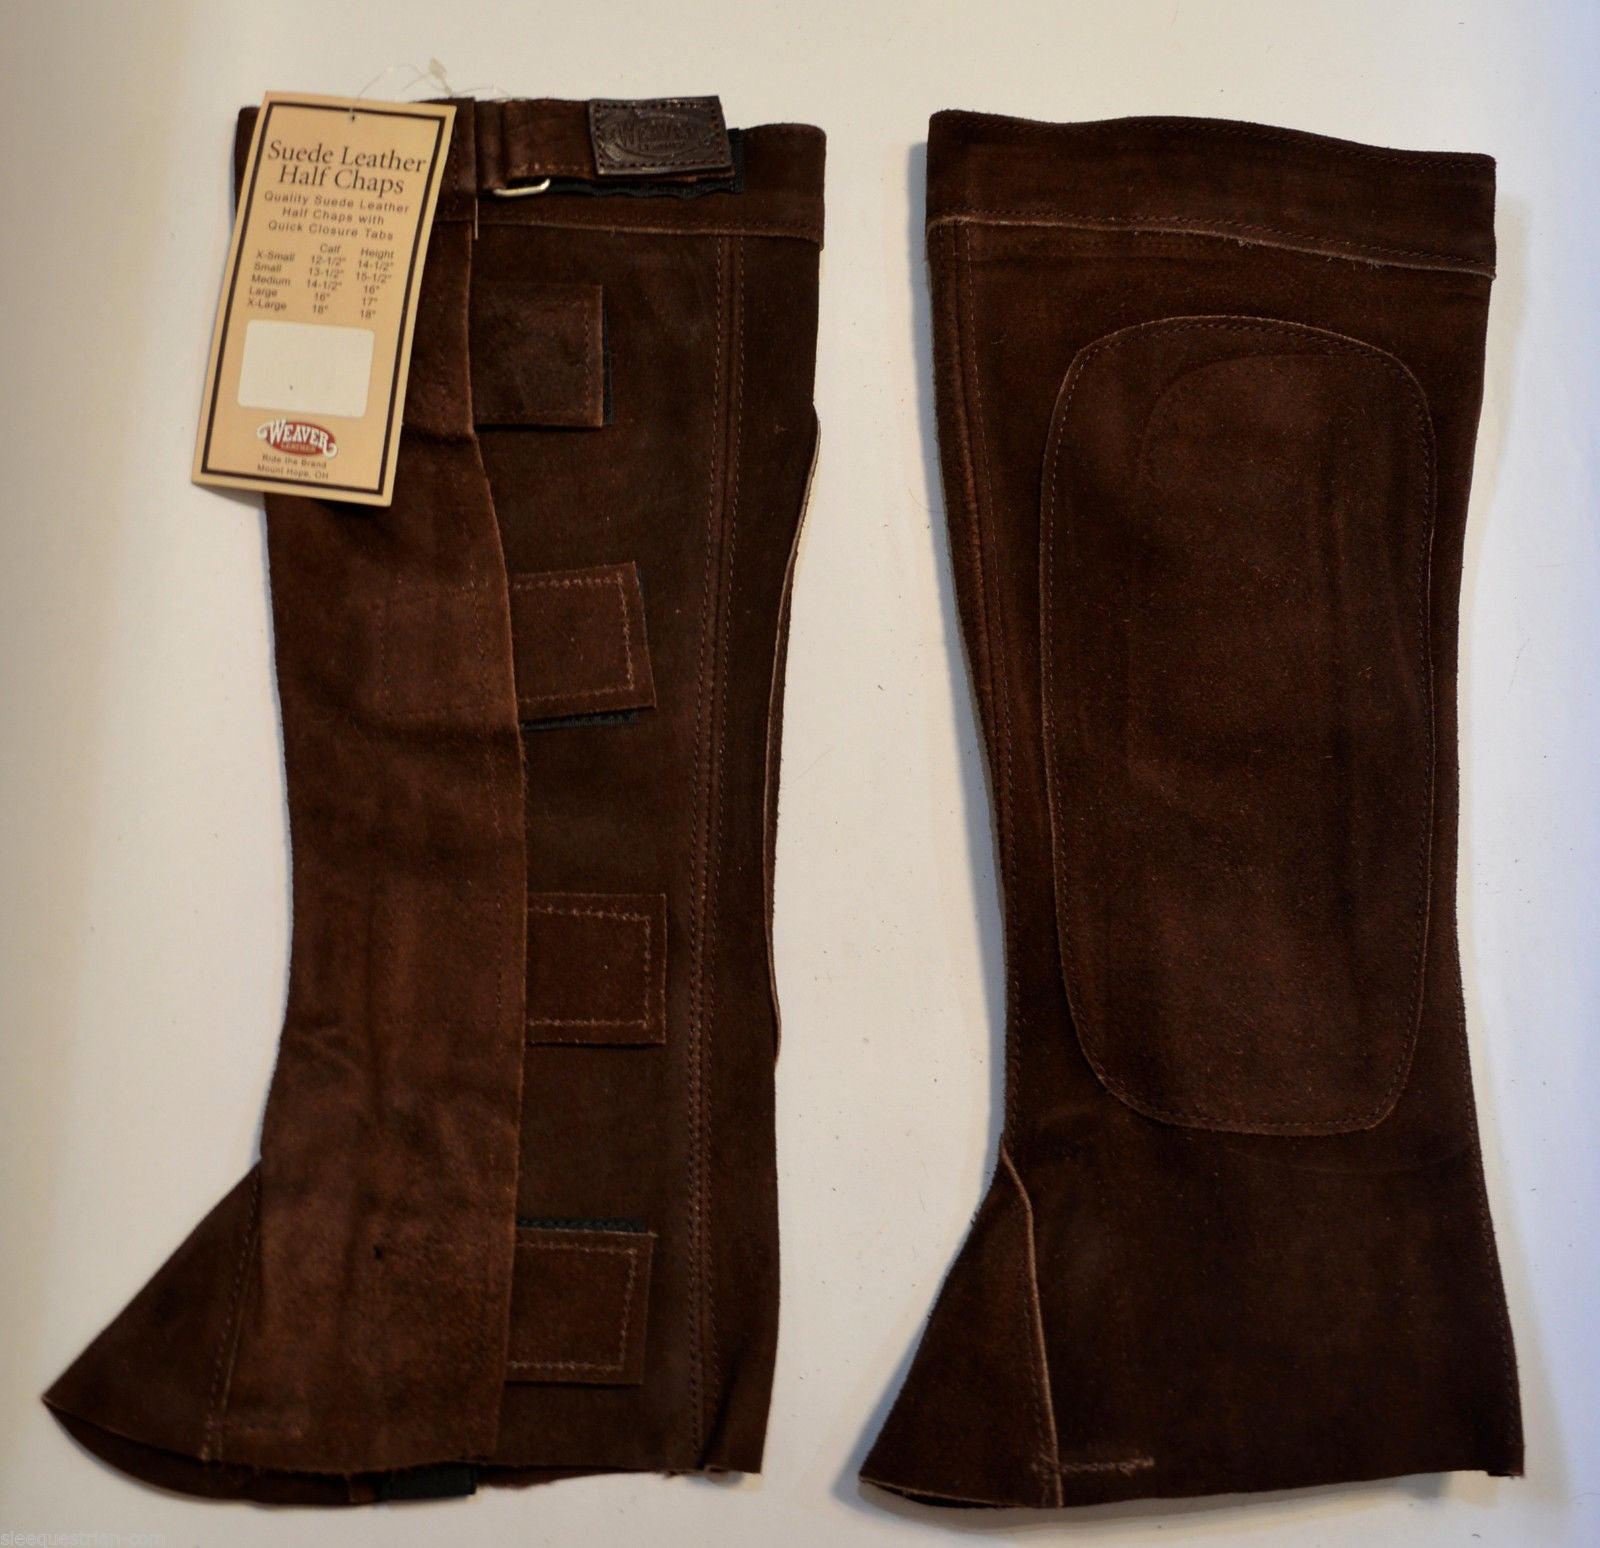 20 Pairs Weaver Leather Suede Half Chaps  Brown - Small Size FREE SHIP Christmas